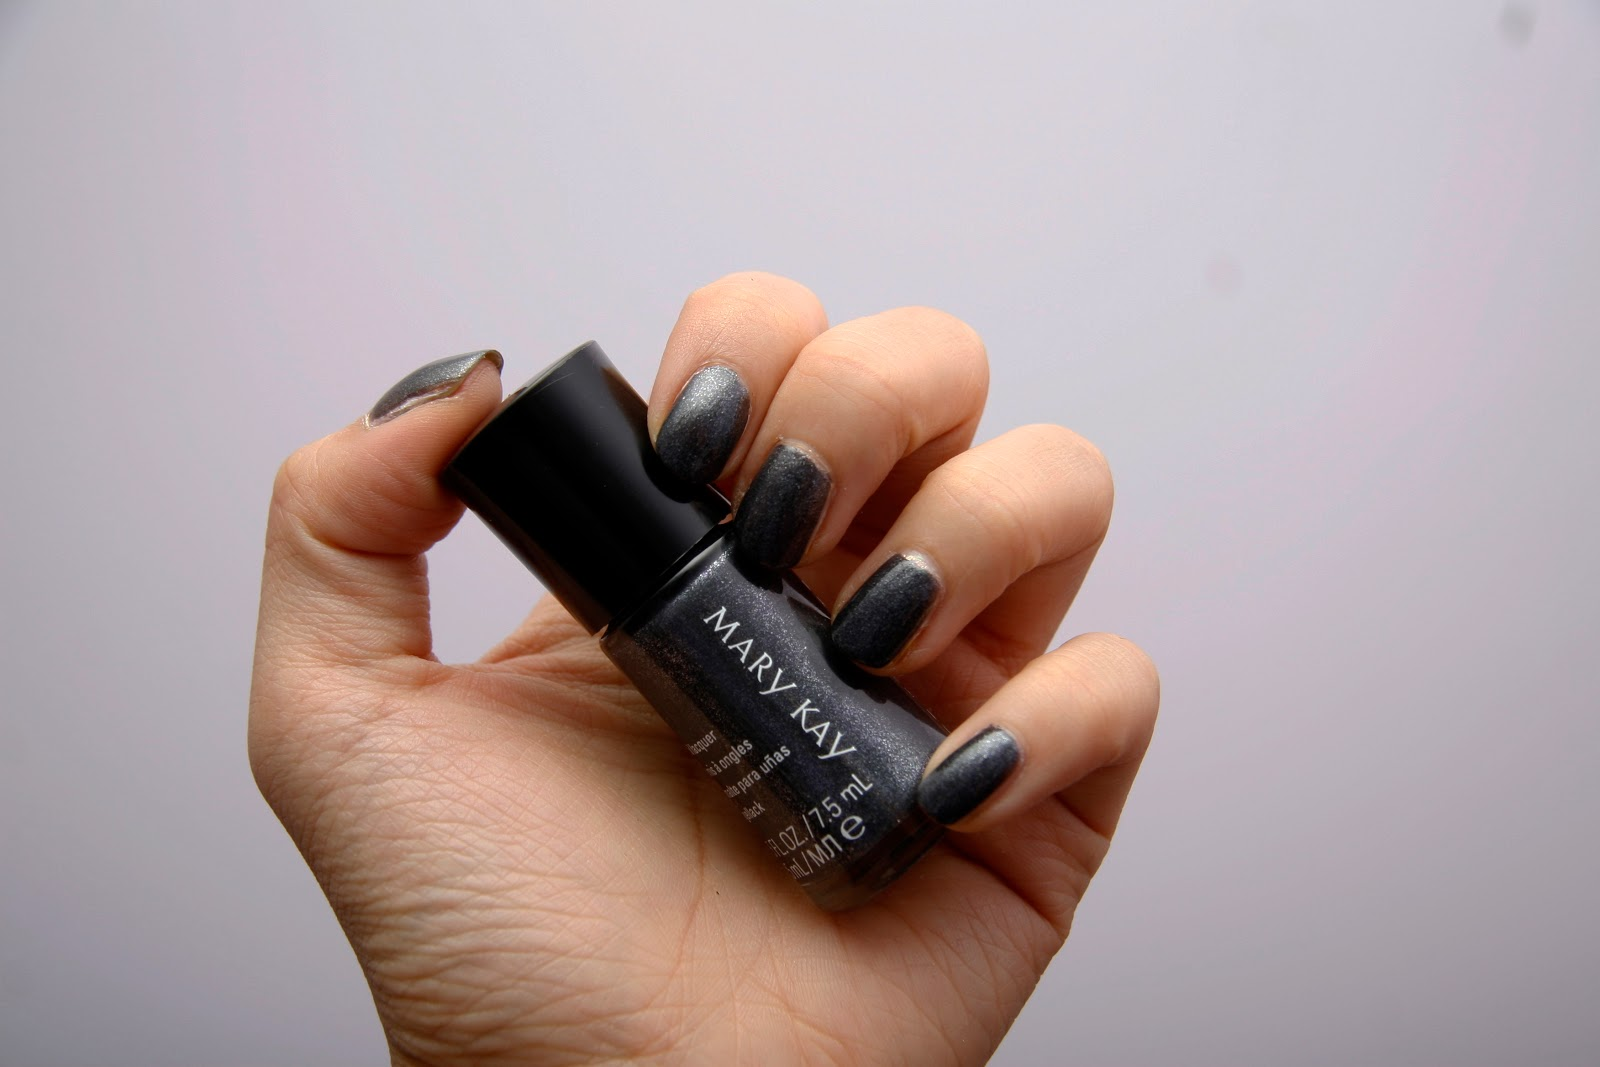 fun size beauty: Mary Kay Midnight Jewels Nail Lacquers in Pearl ...